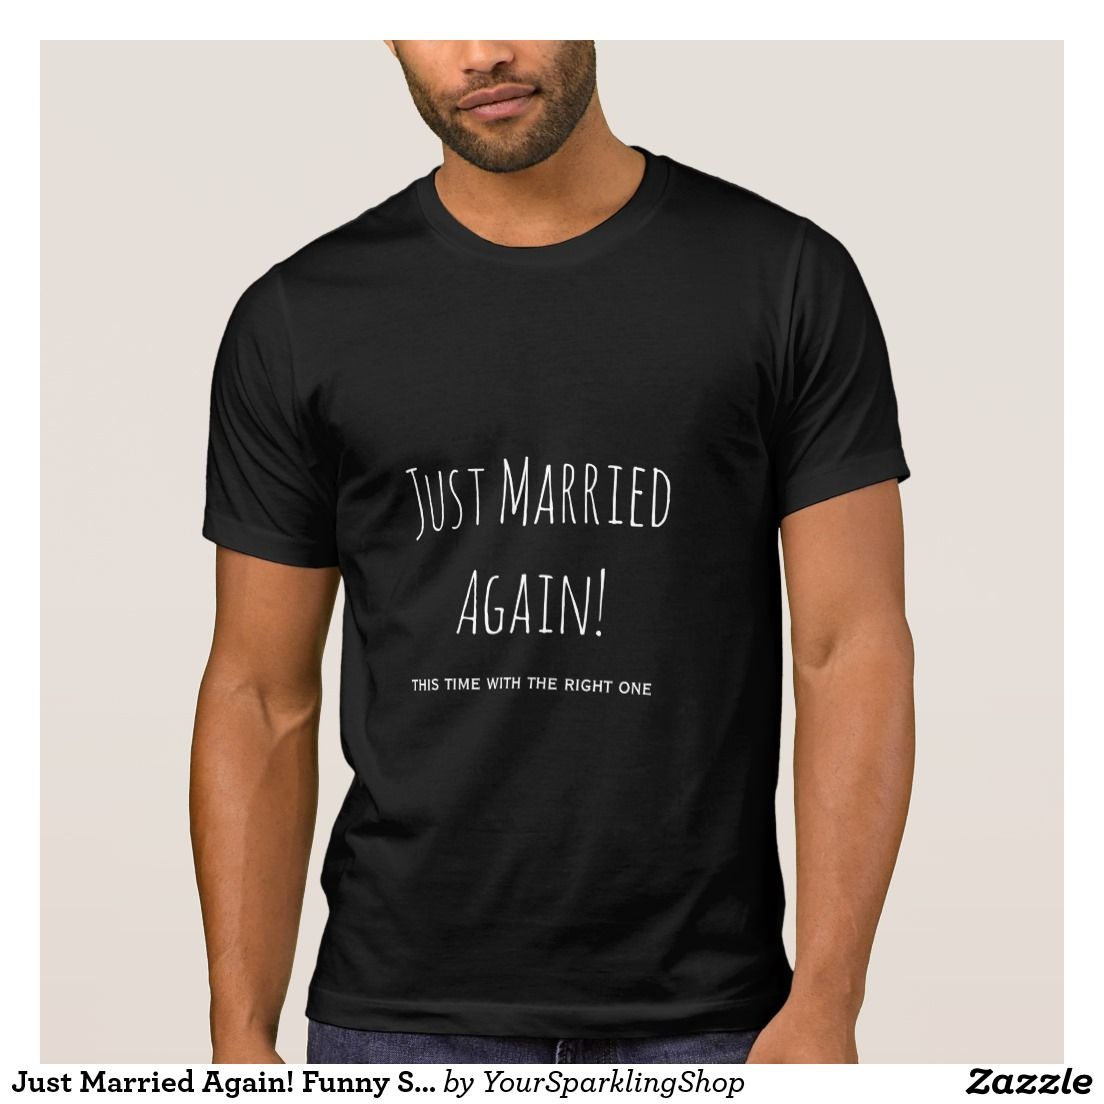 Just Married Again! Funny Second Marriage Quote T-Shirt #JustSold #ThankYou  :)